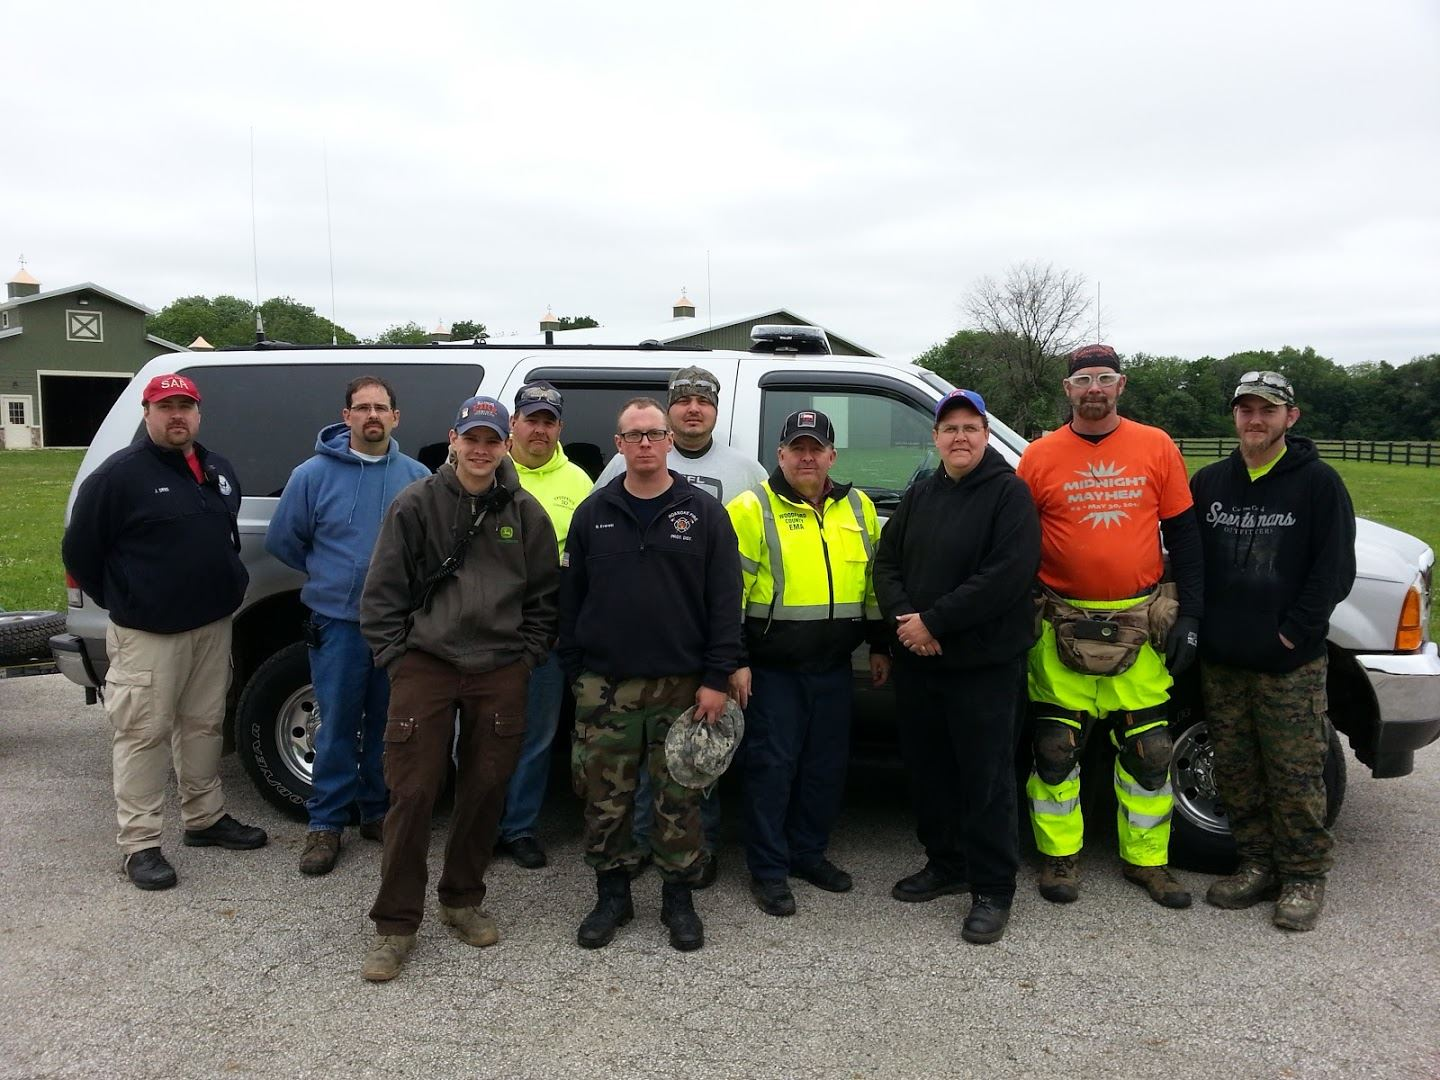 Image of 10 Men of the Search and Rescue Team standing in Front of White SUV